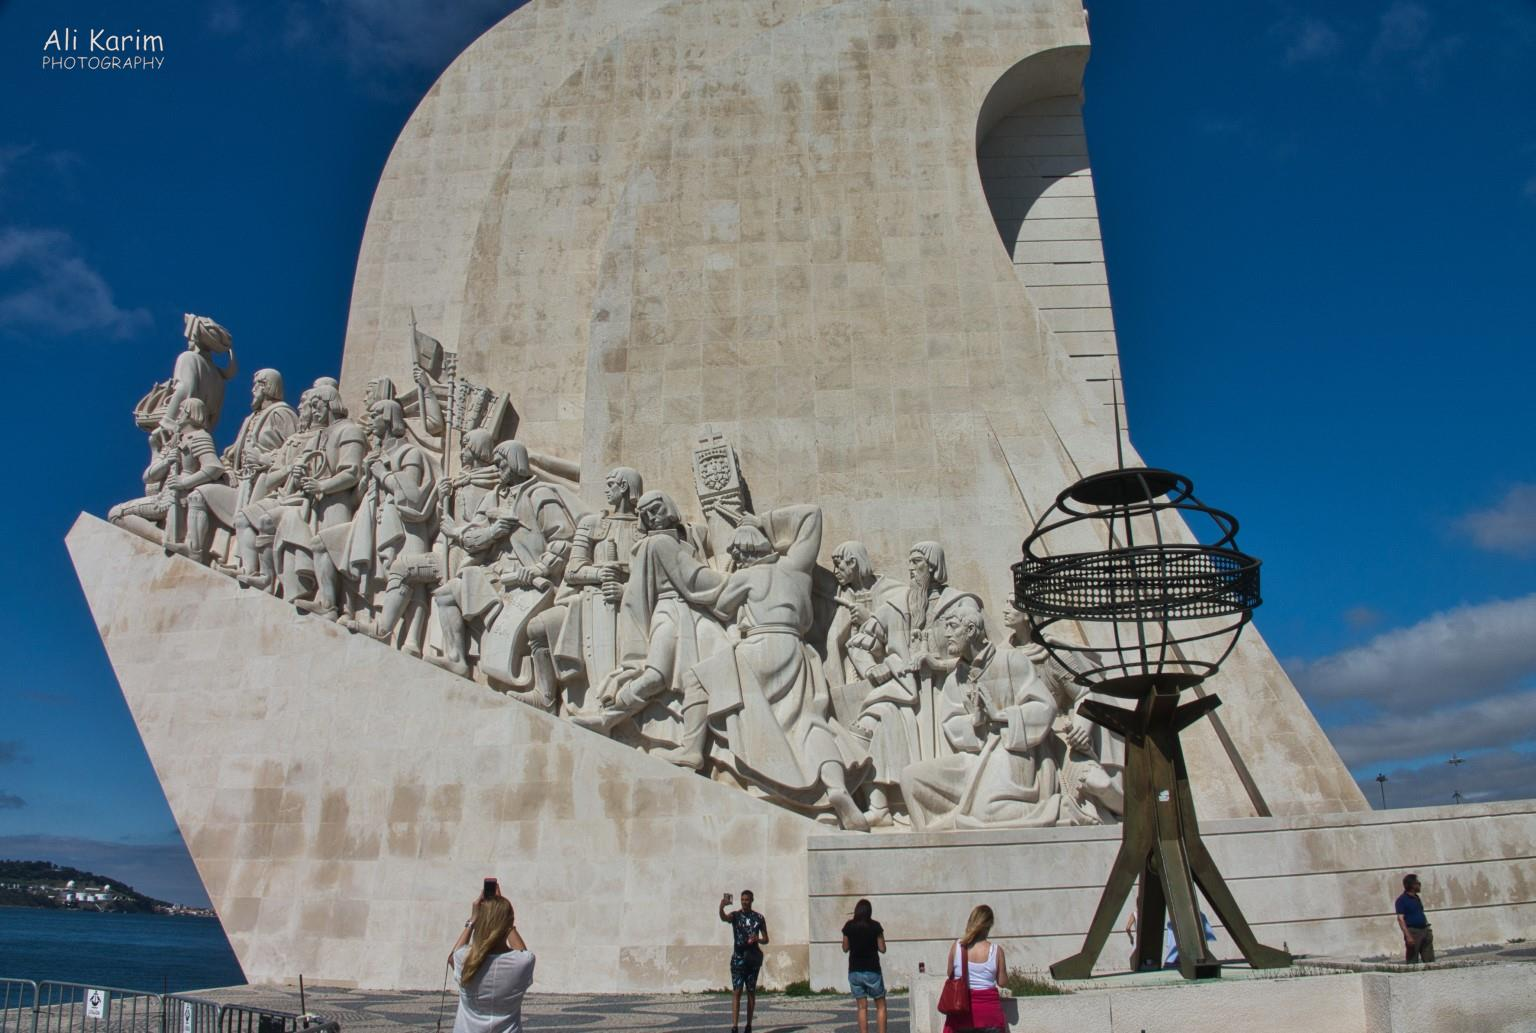 Lisbon Portugal: The Padrão dos Descobrimentos monument in Belem, which documents & honors the various Portuguese seagoing explorers & their financiers